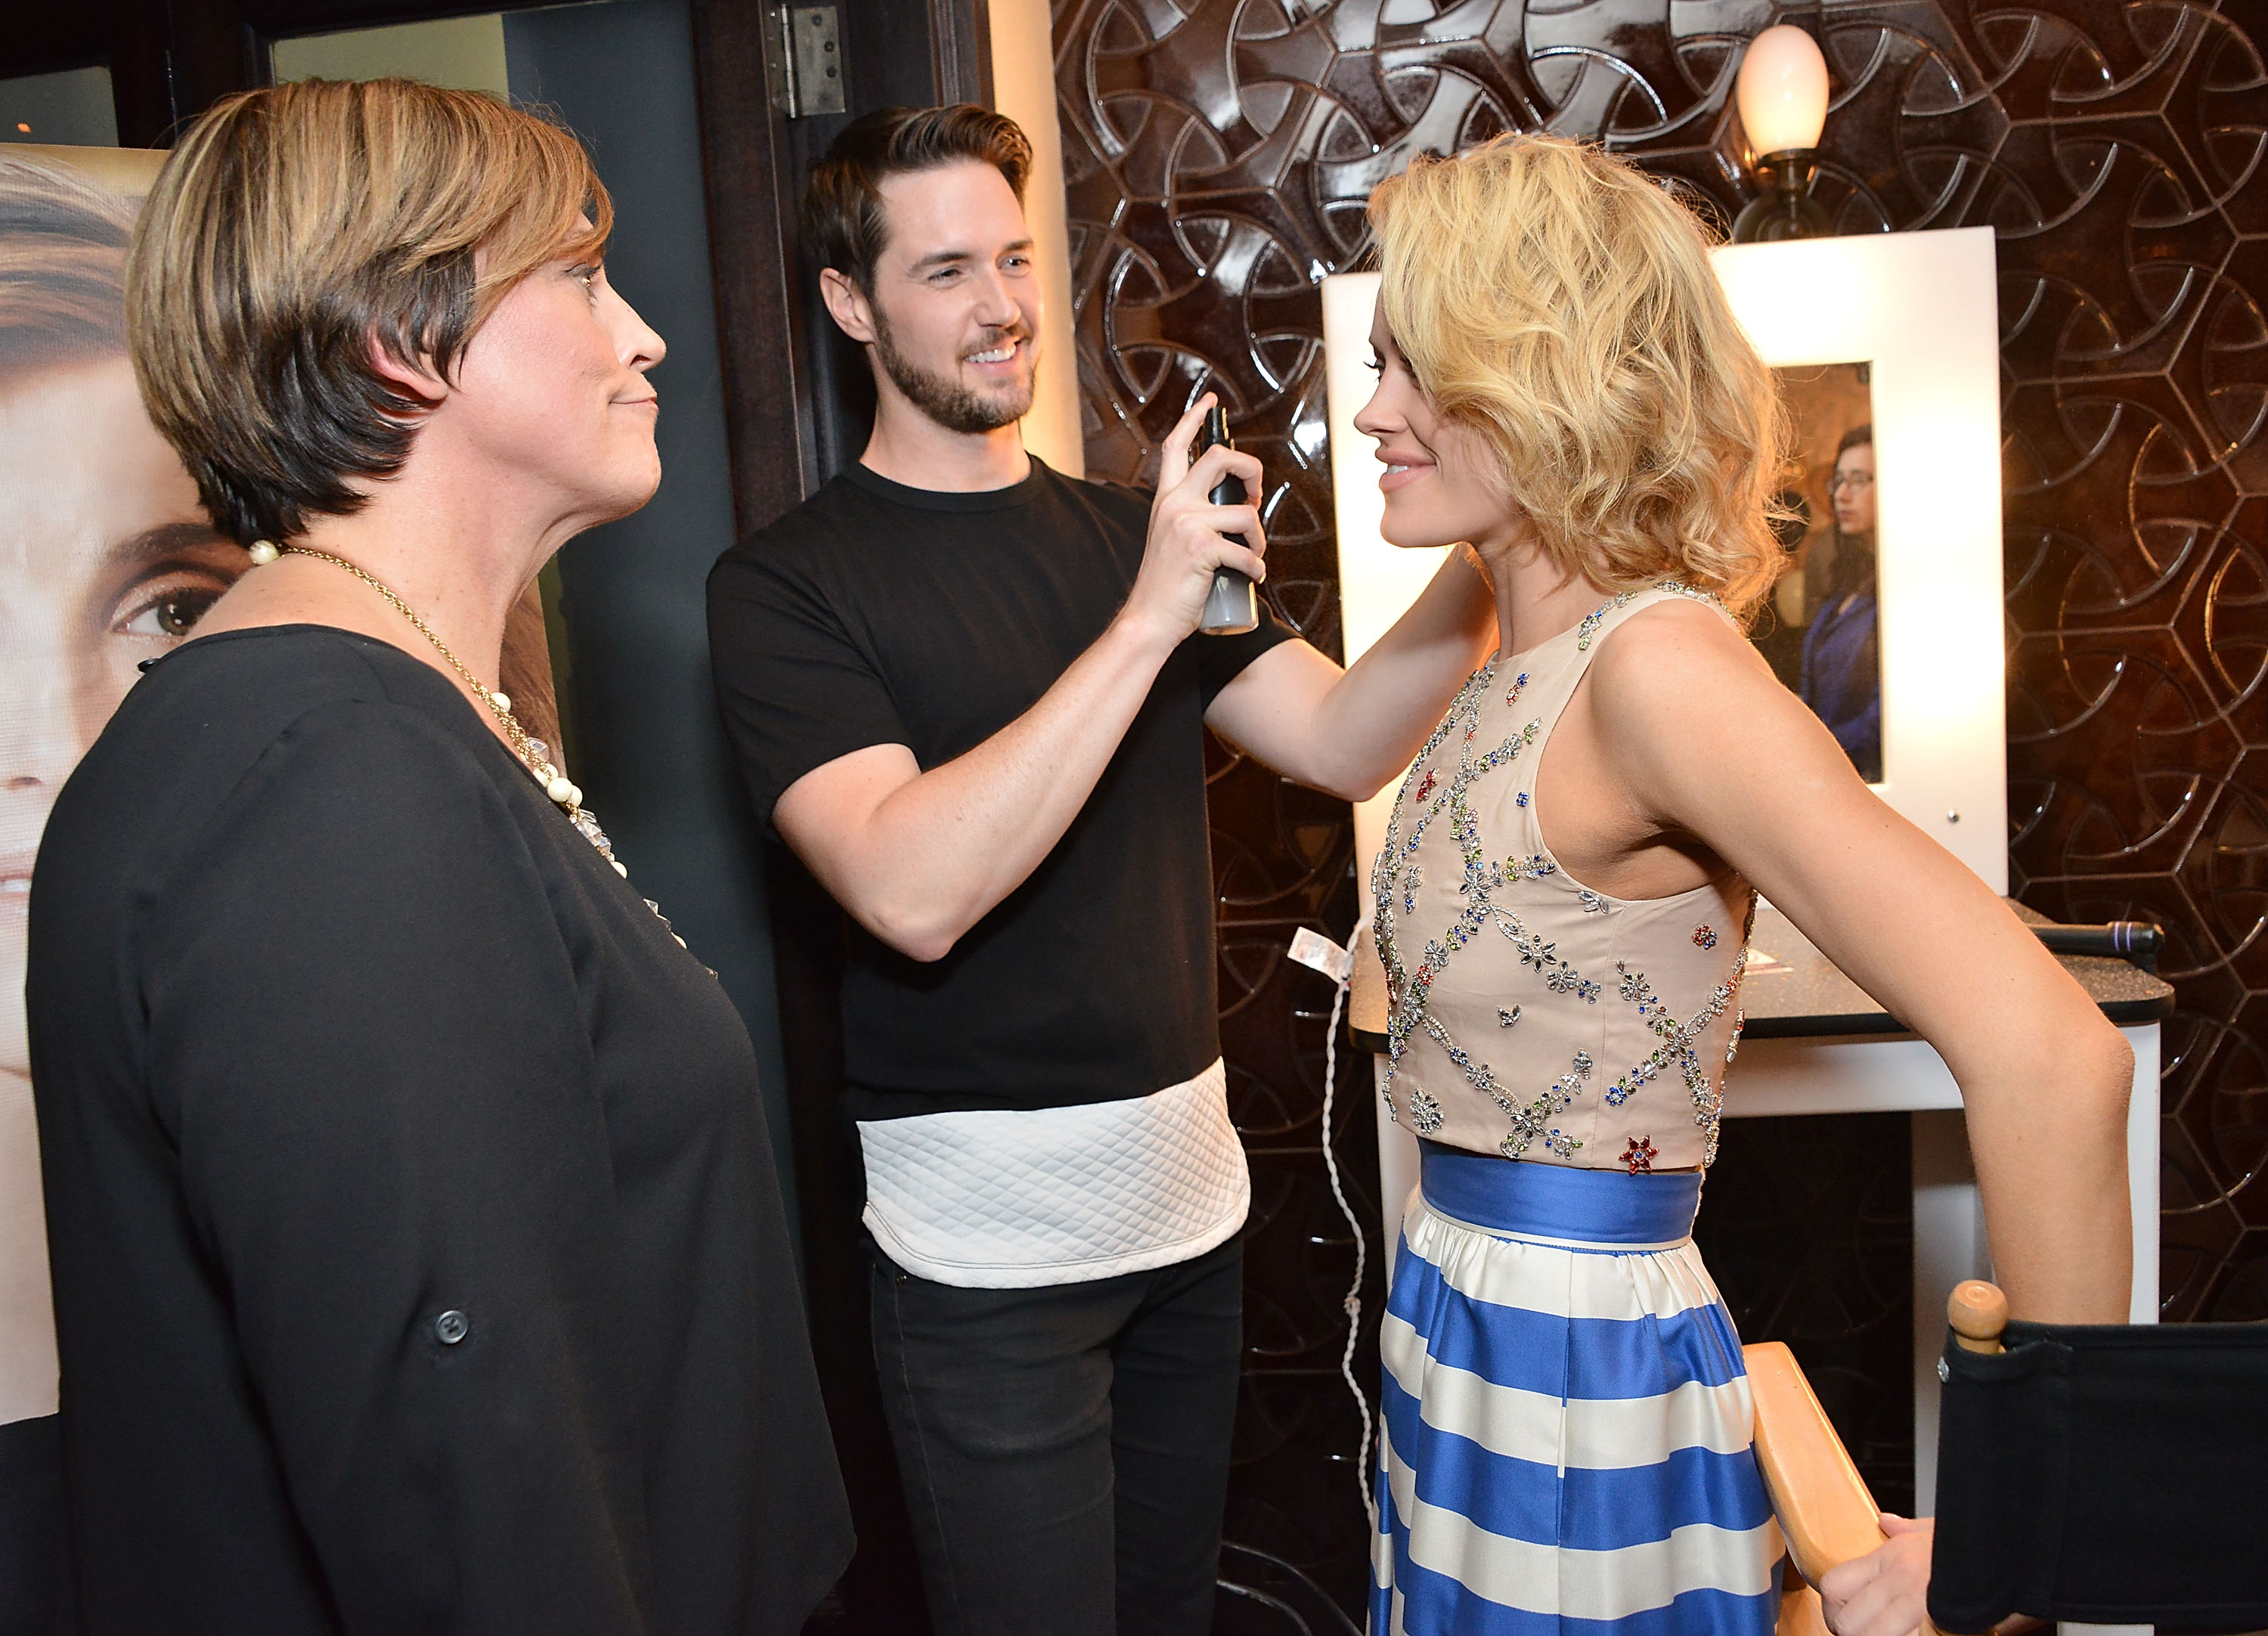 Peta Murgatroyd (far right) gets glammed up by celeb hair stylist Paul Norton (while Joico VP Sara Jones looks on) at Joico's Hair Shake Launch, hosted by Murgatroyd,  at The District Restaurant in L.A April 30. (Araya Diaz/Getty Images)